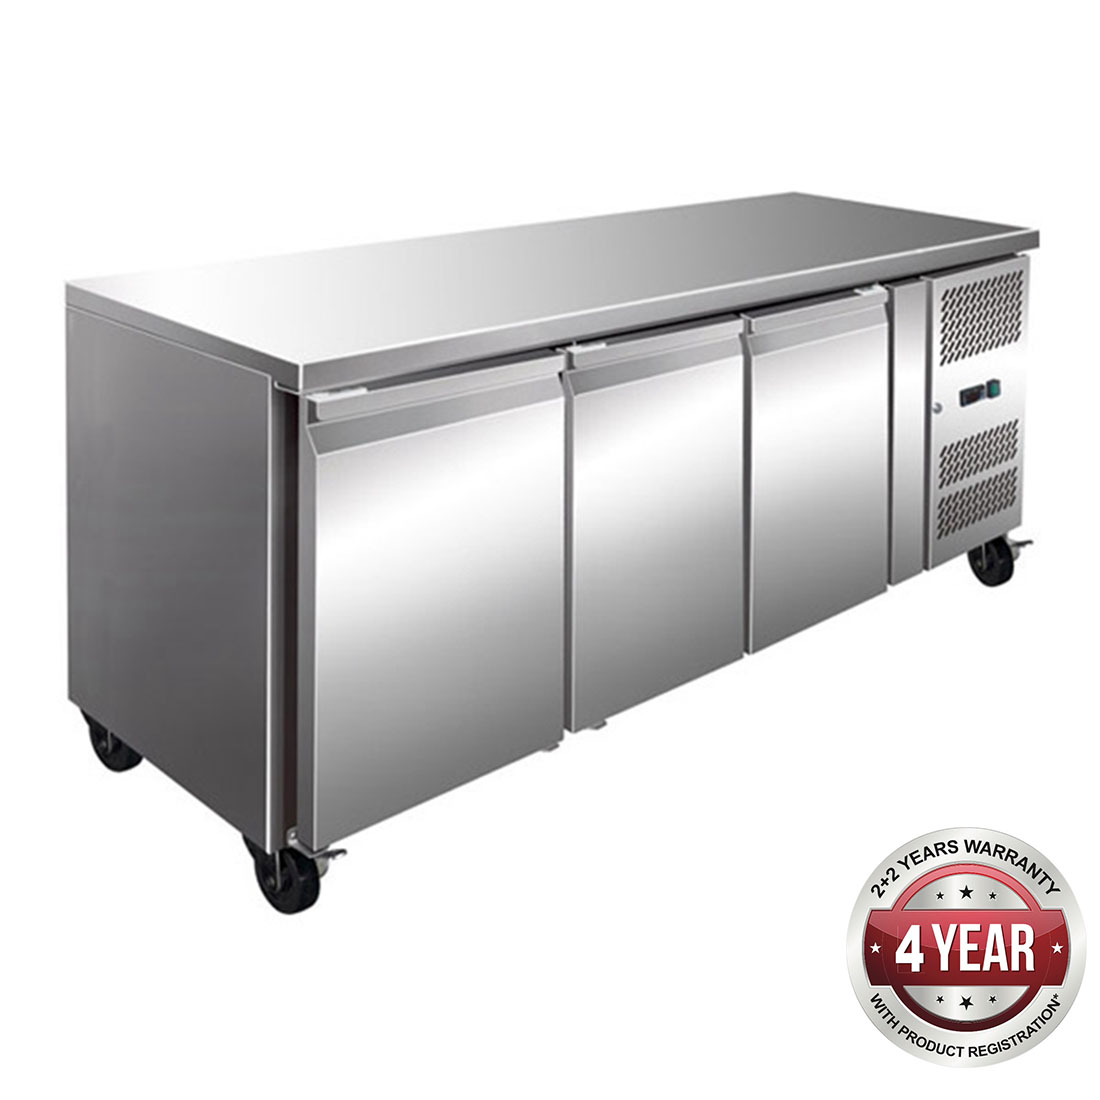 GN3100BT TROPICALISED 3 Door Gastronorm Bench Freezer